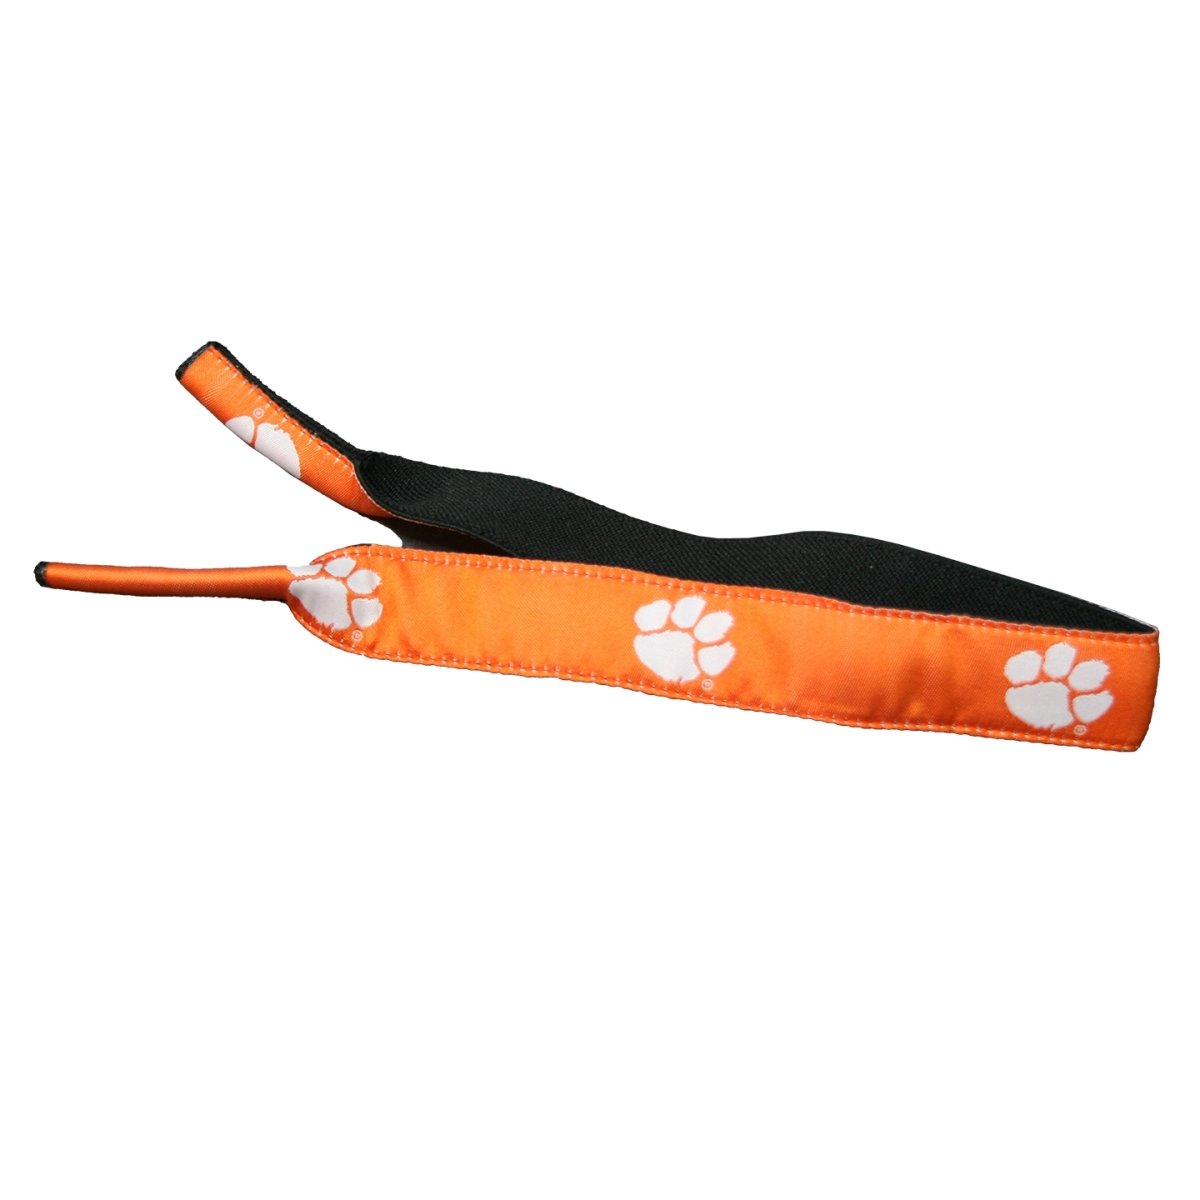 Clemson Tigers Sunglasses Holder - Mr. Knickerbocker